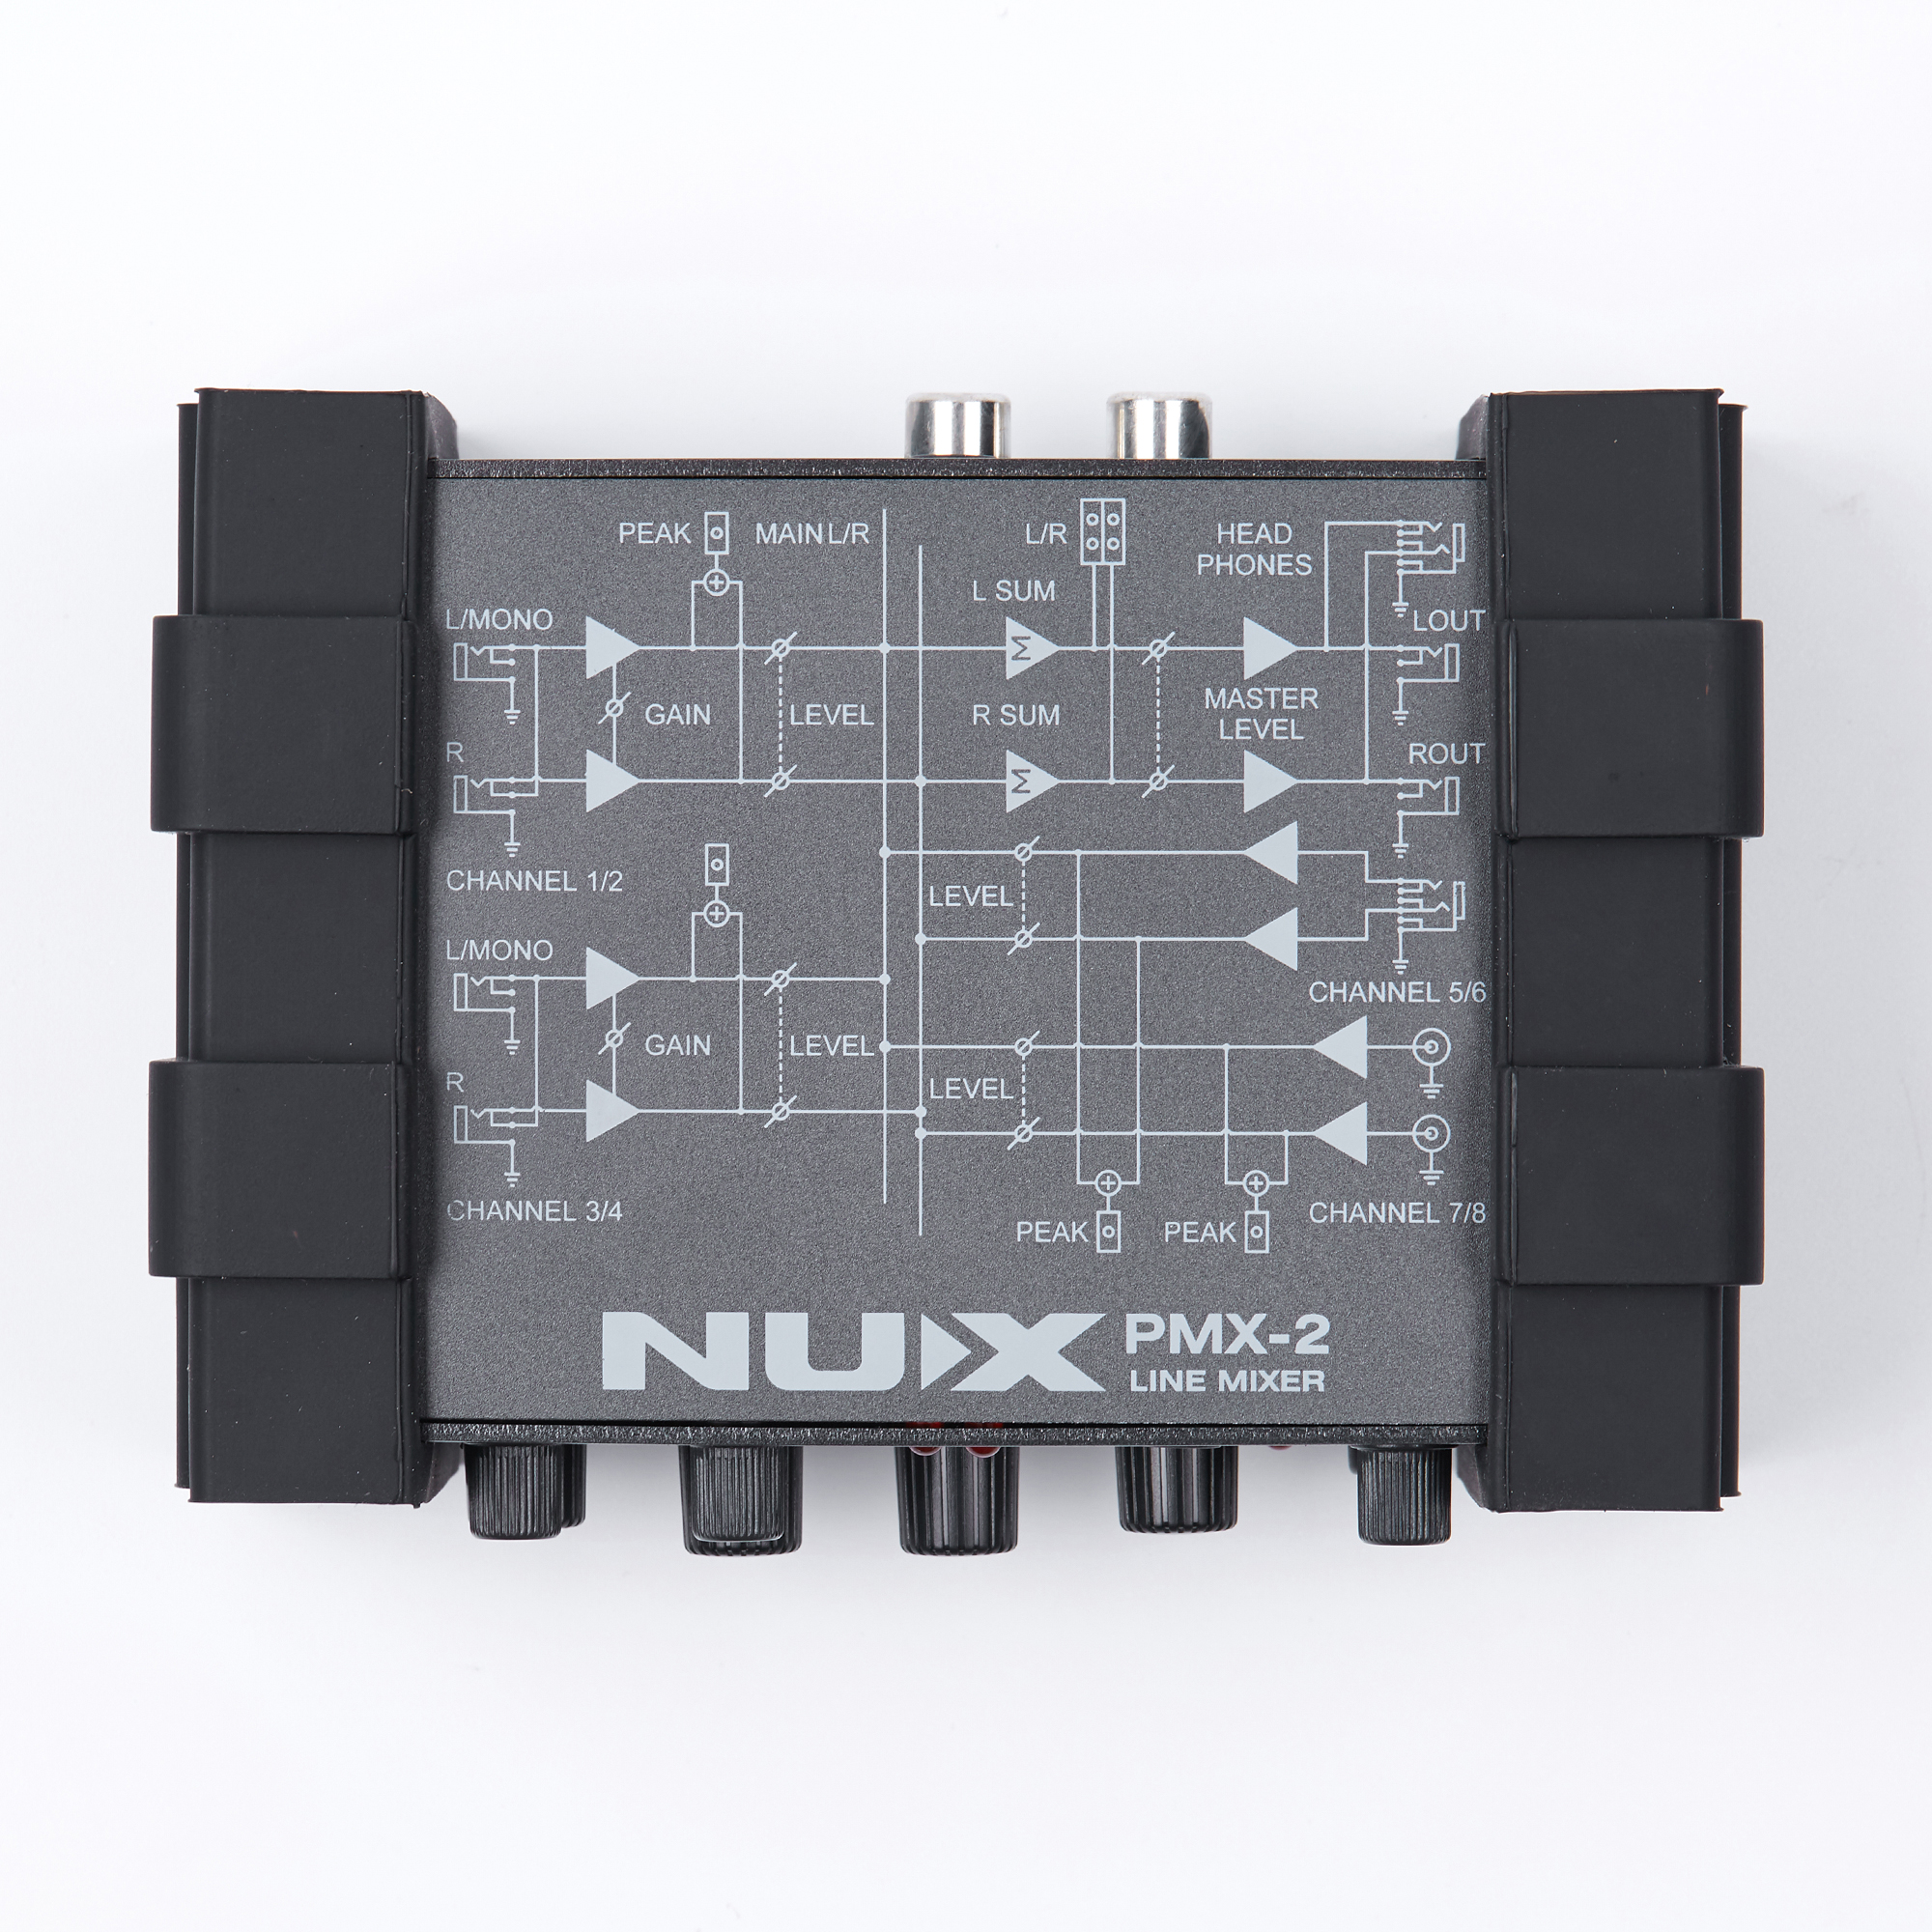 Gain Control 8 Inputs and 2 Outputs NUX PMX-2 Multi-Channel Mini Mixer 30 Musical Instruments Accessories for Guitar Bass Player открытые системы журнал сетевых решений lan 10 2013